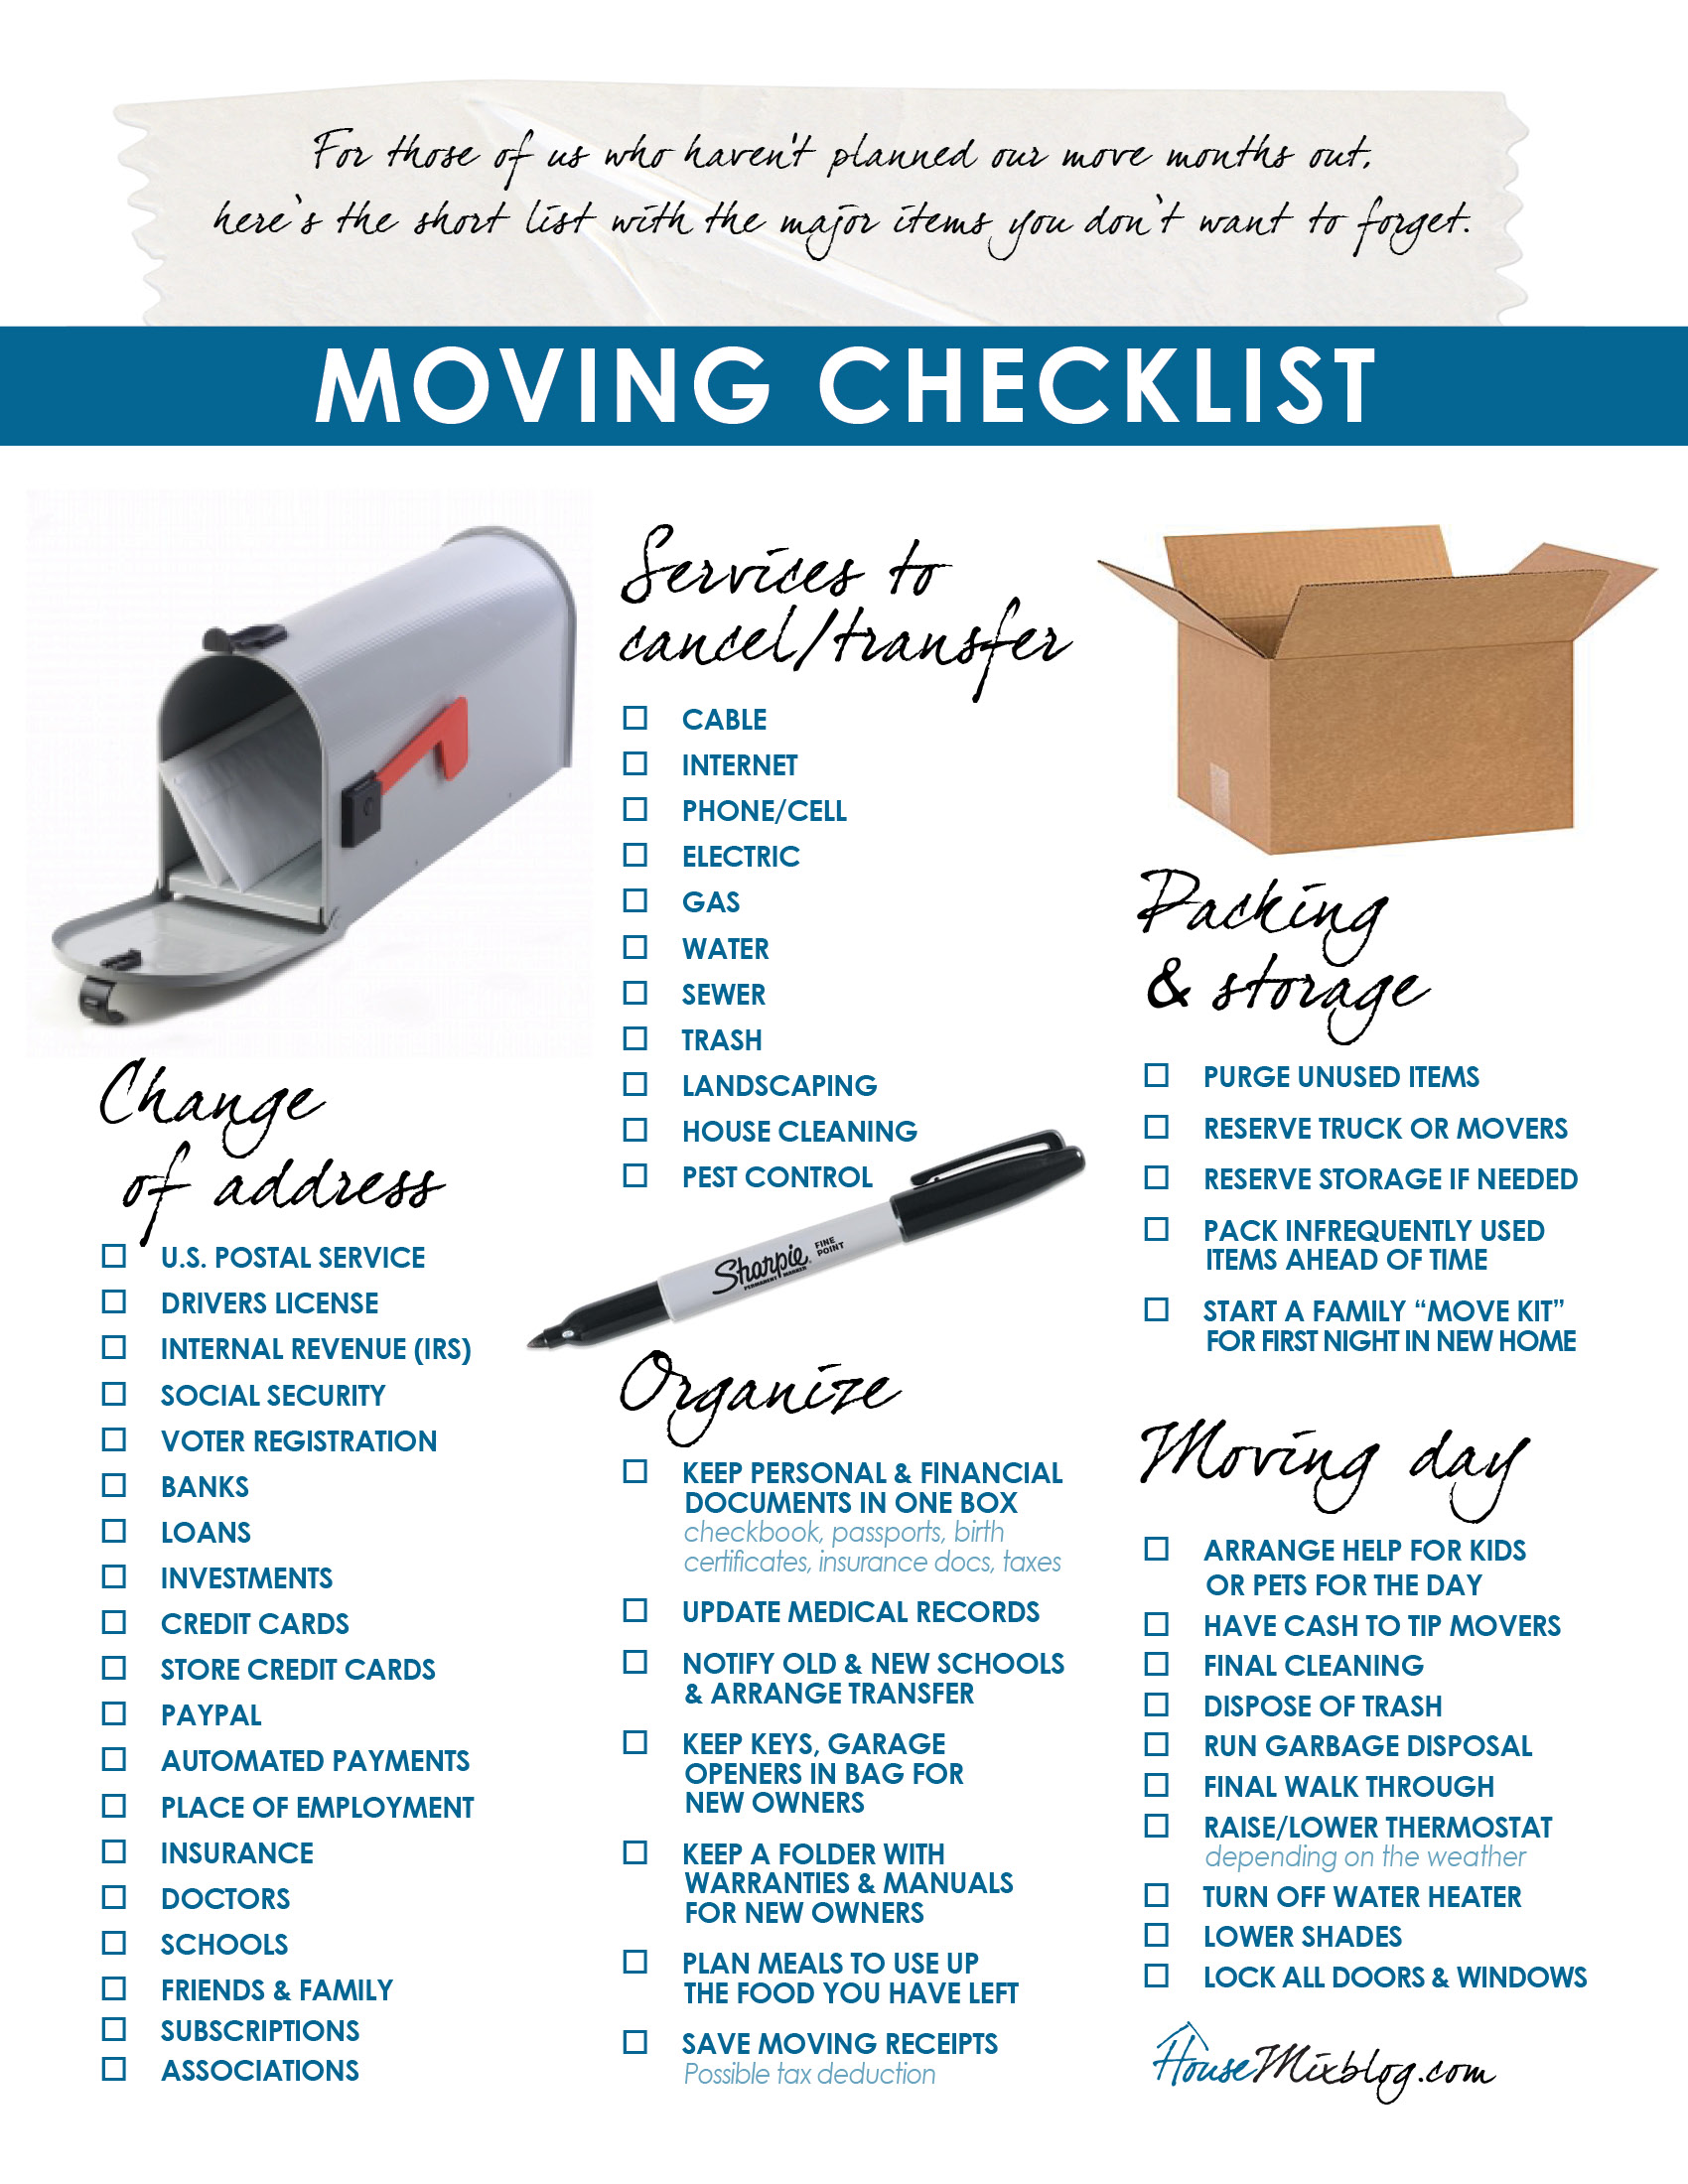 New House Checklist New House Cleaning Checklist Moving